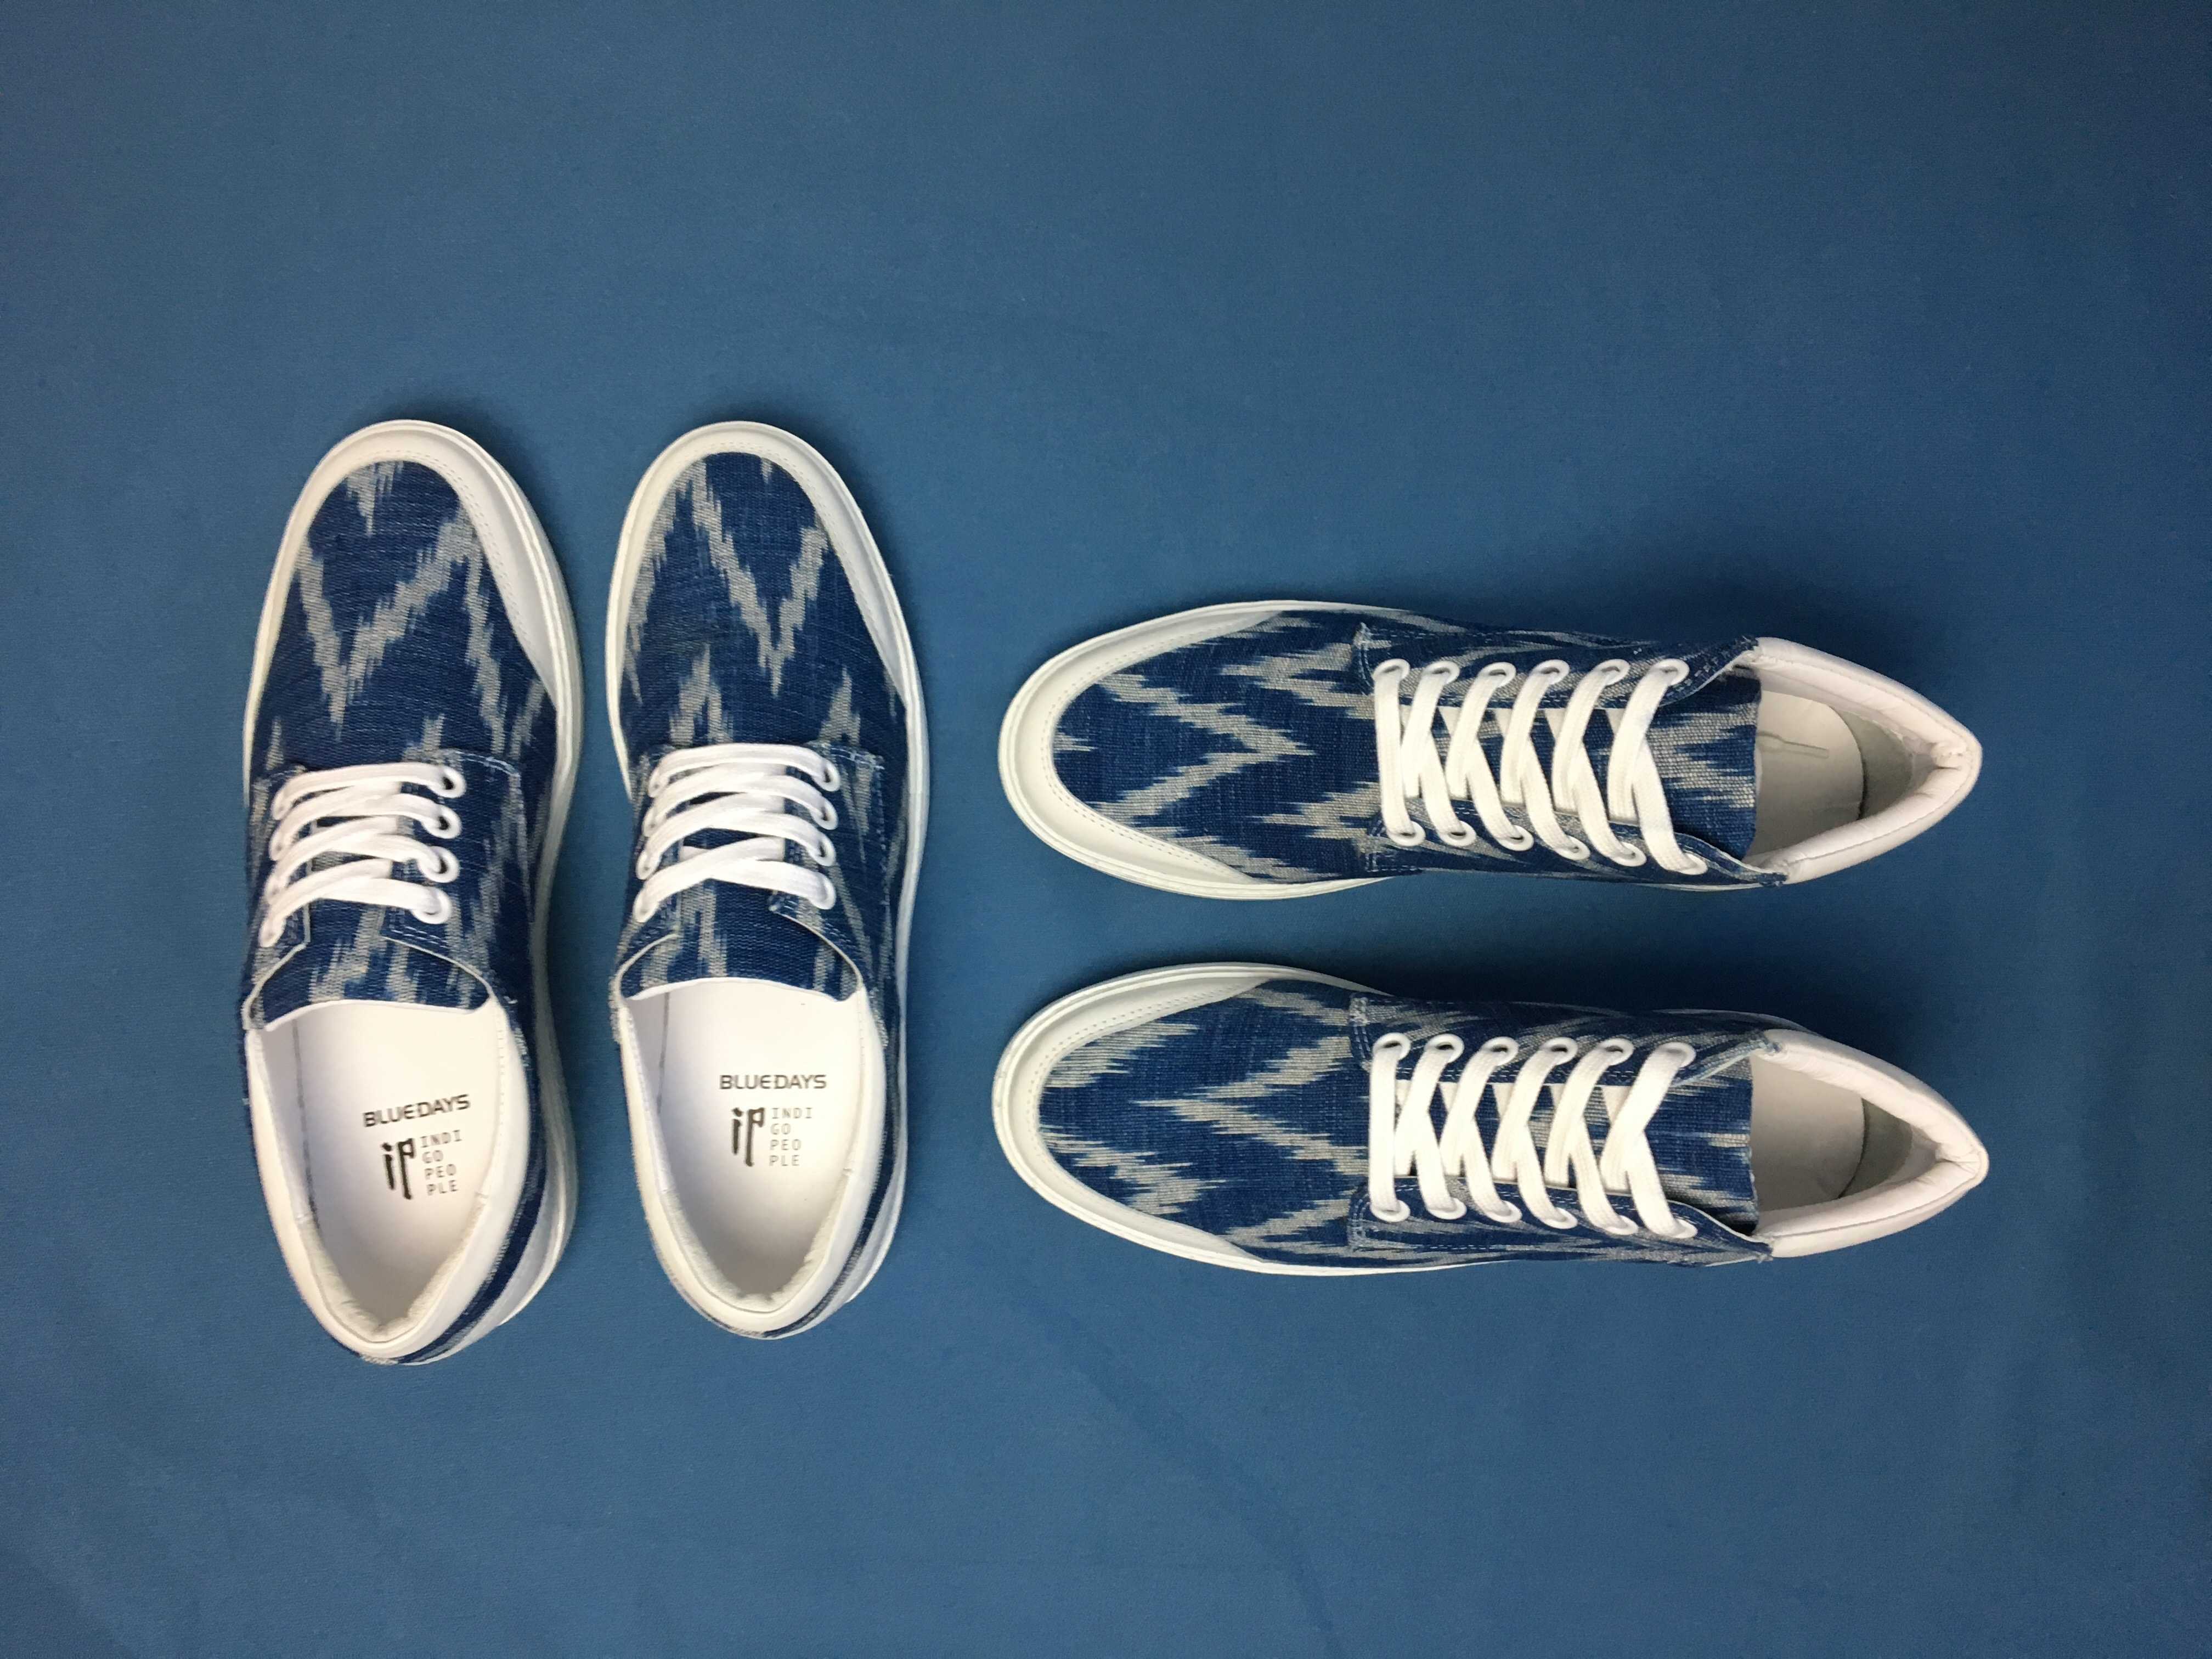 Blue Days Footwear x Indigo People (1)